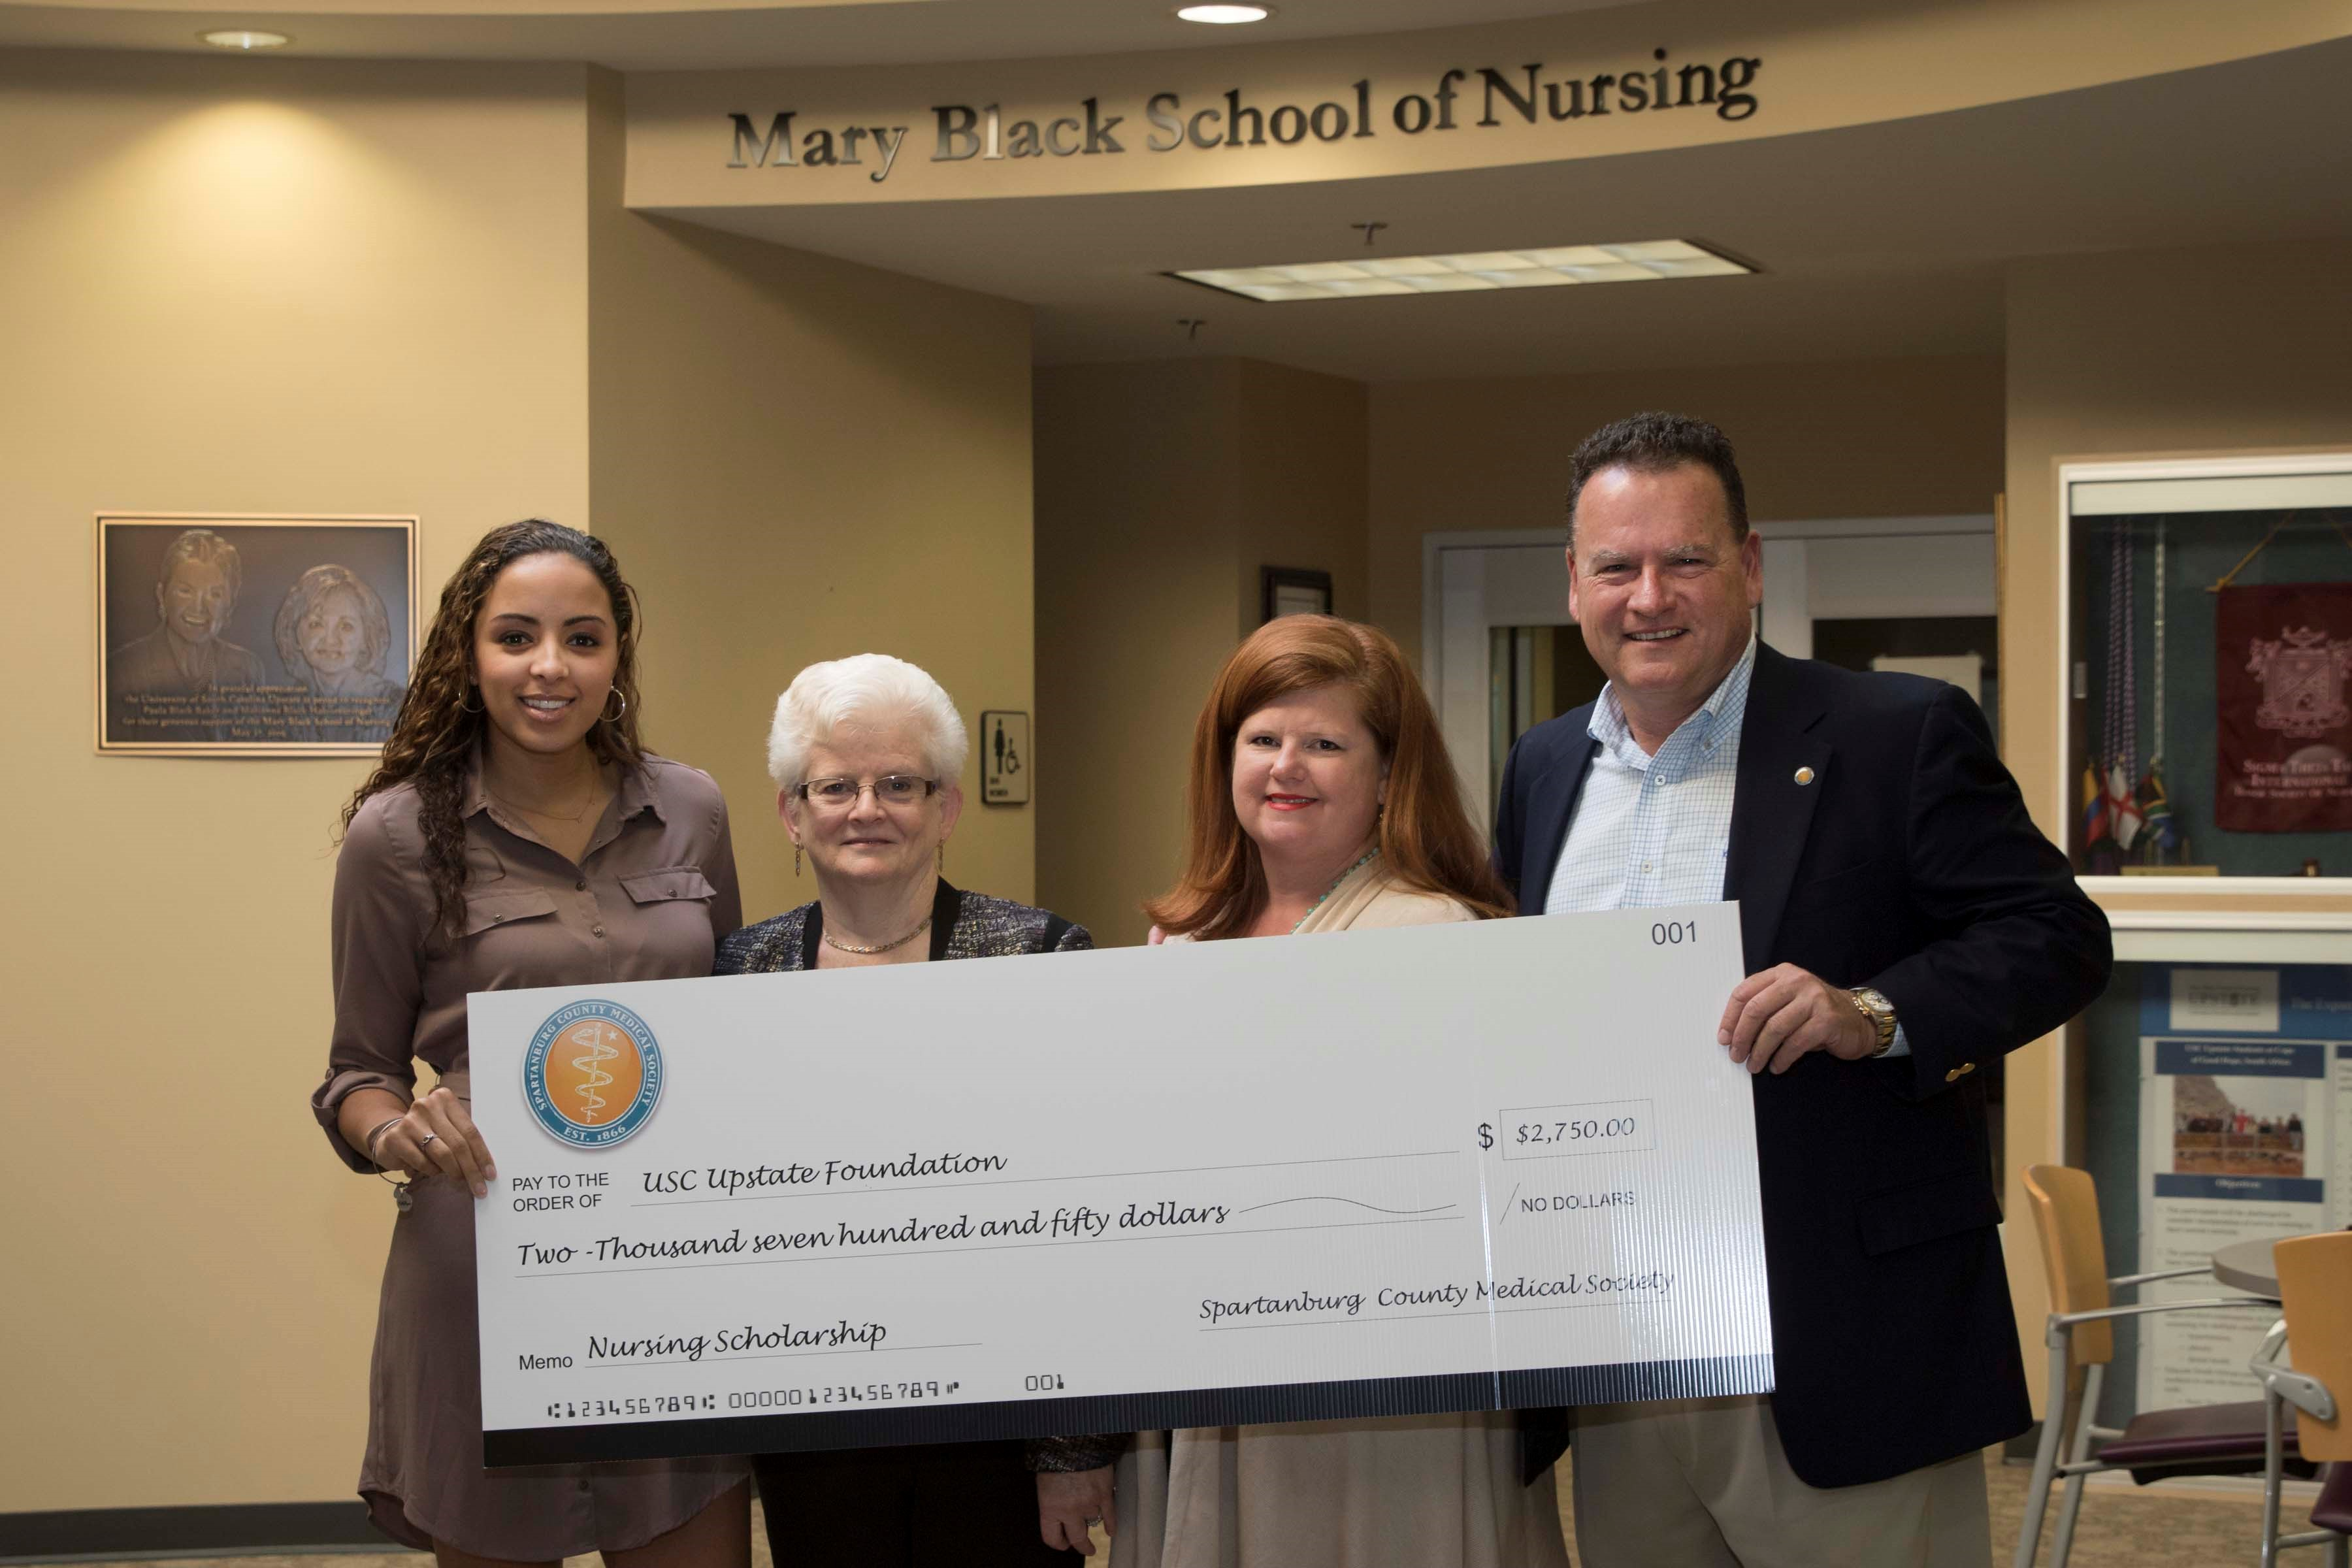 From left, Kayla McAvoy, Dr. Katharine Gibb, dean of the Mary Black School of Nursing at USC Upstate, Bea Walters Smith, director of development and foundation scholarships at USC Upstate Foundation, and Robert Conner, executive director of the Spartanburg County Medical Society.